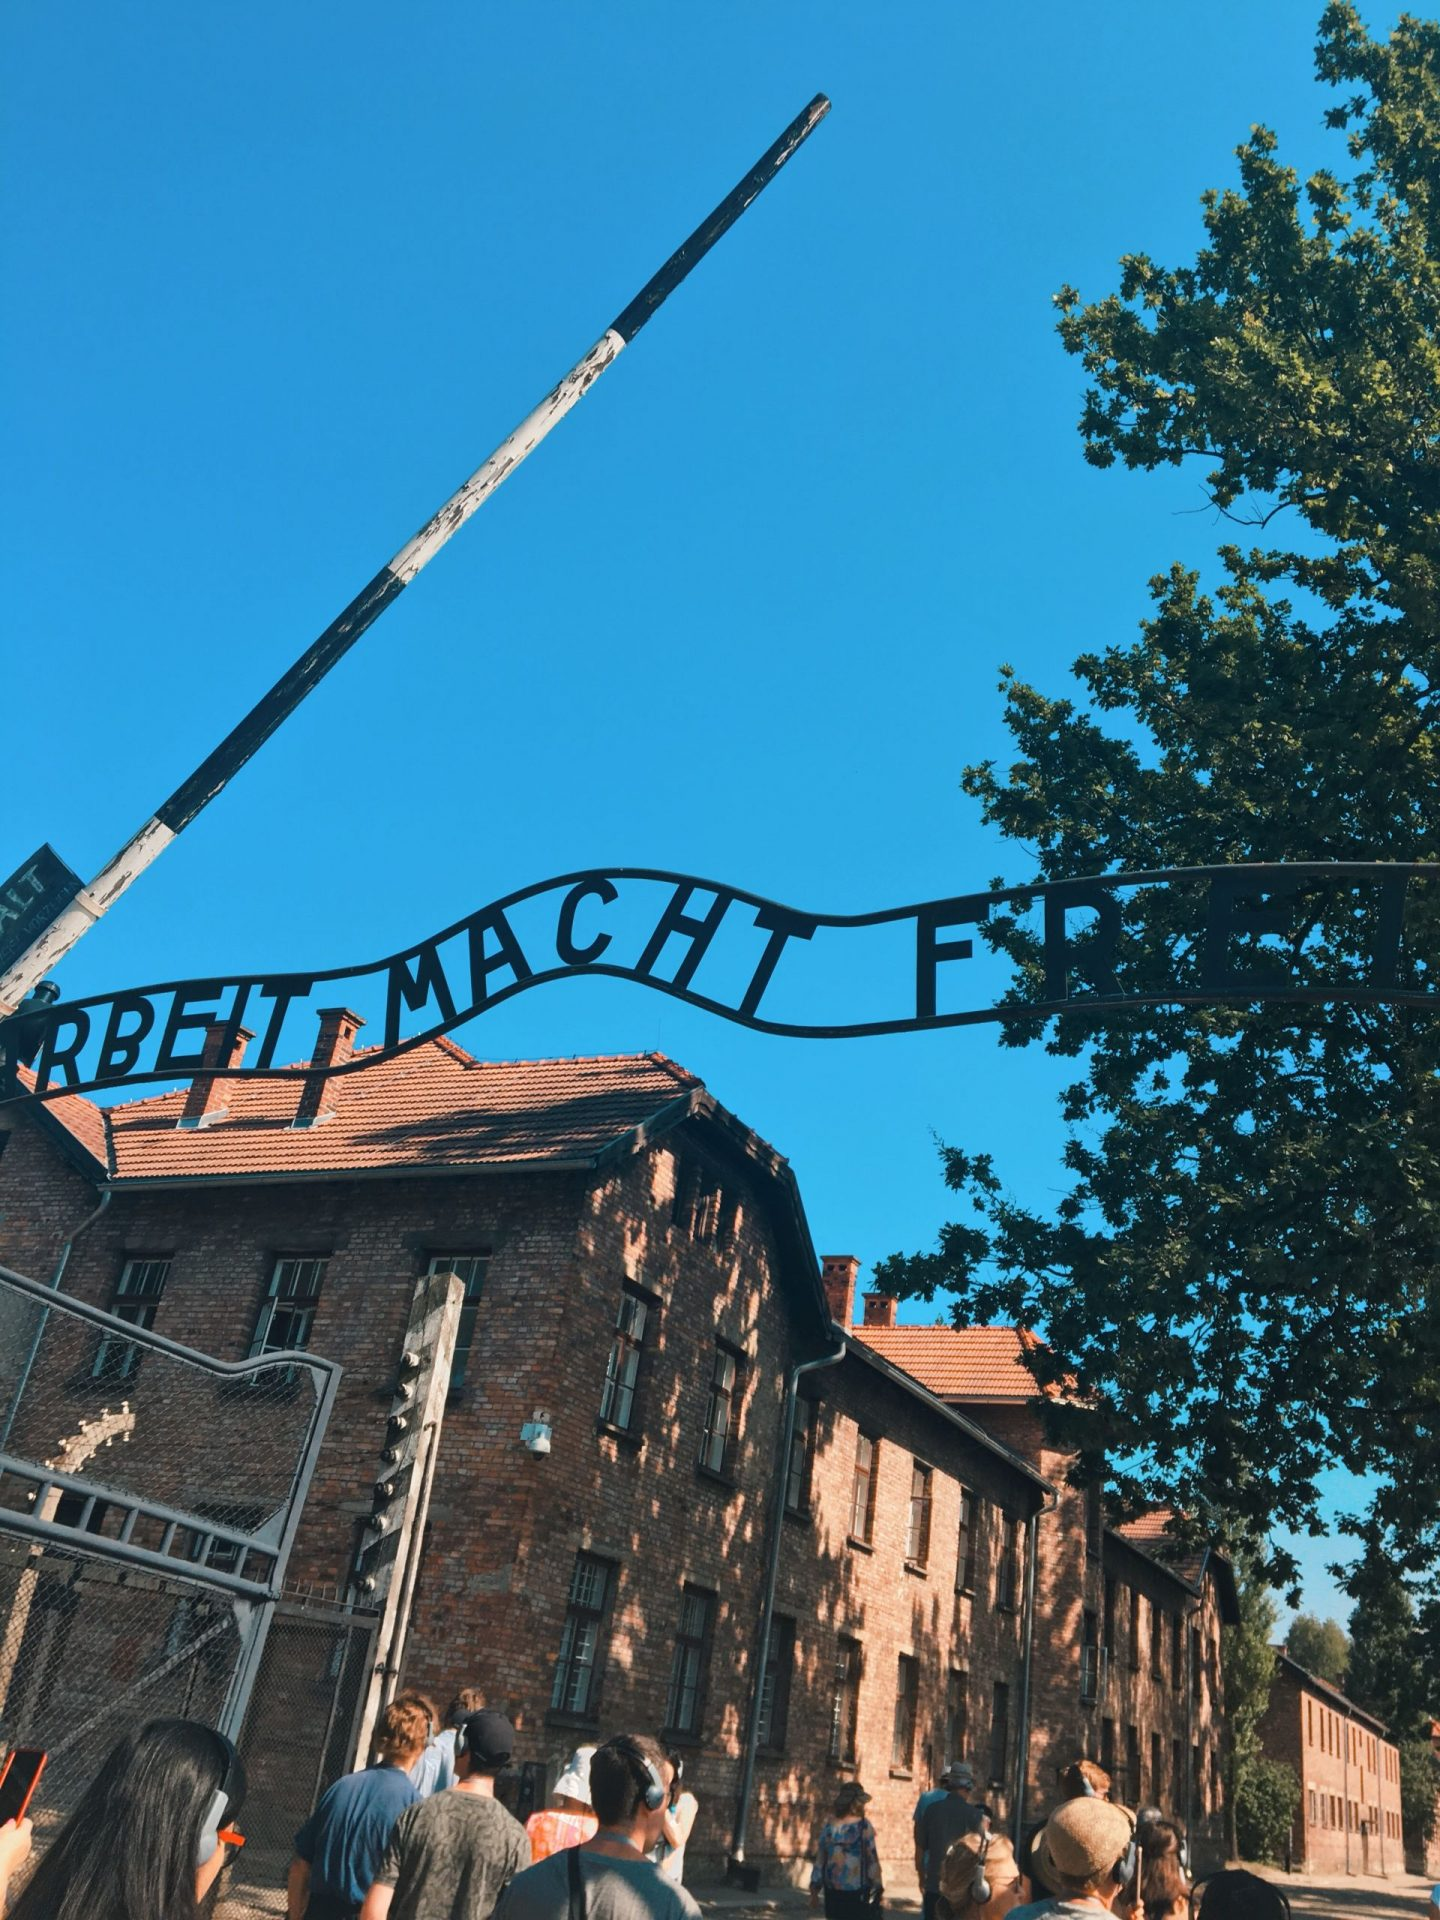 Auschwitz concentration camp and the dilemma of selfies